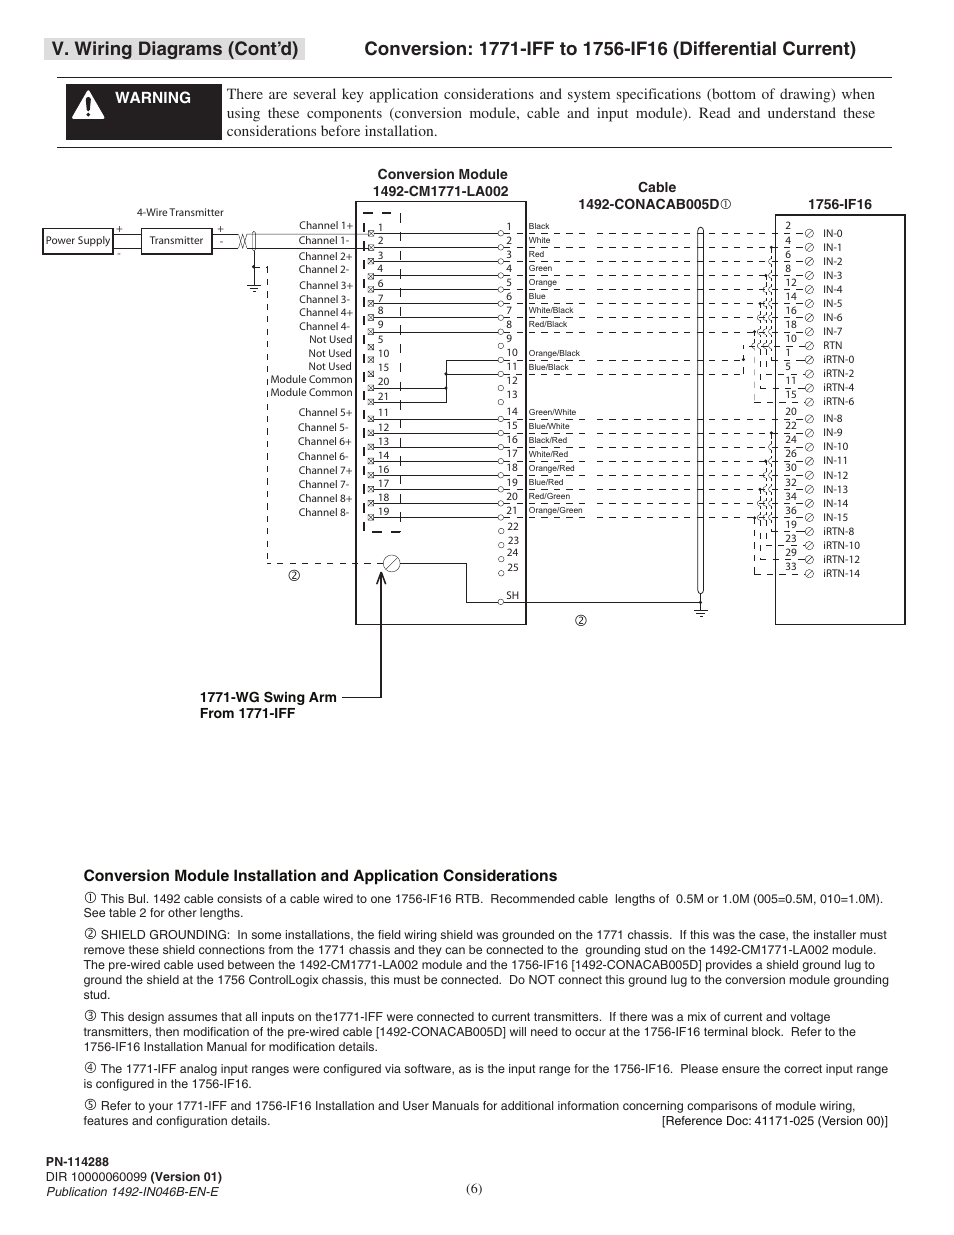 V. wiring diagrams (cont'd) | Rockwell Automation 1492 ... on